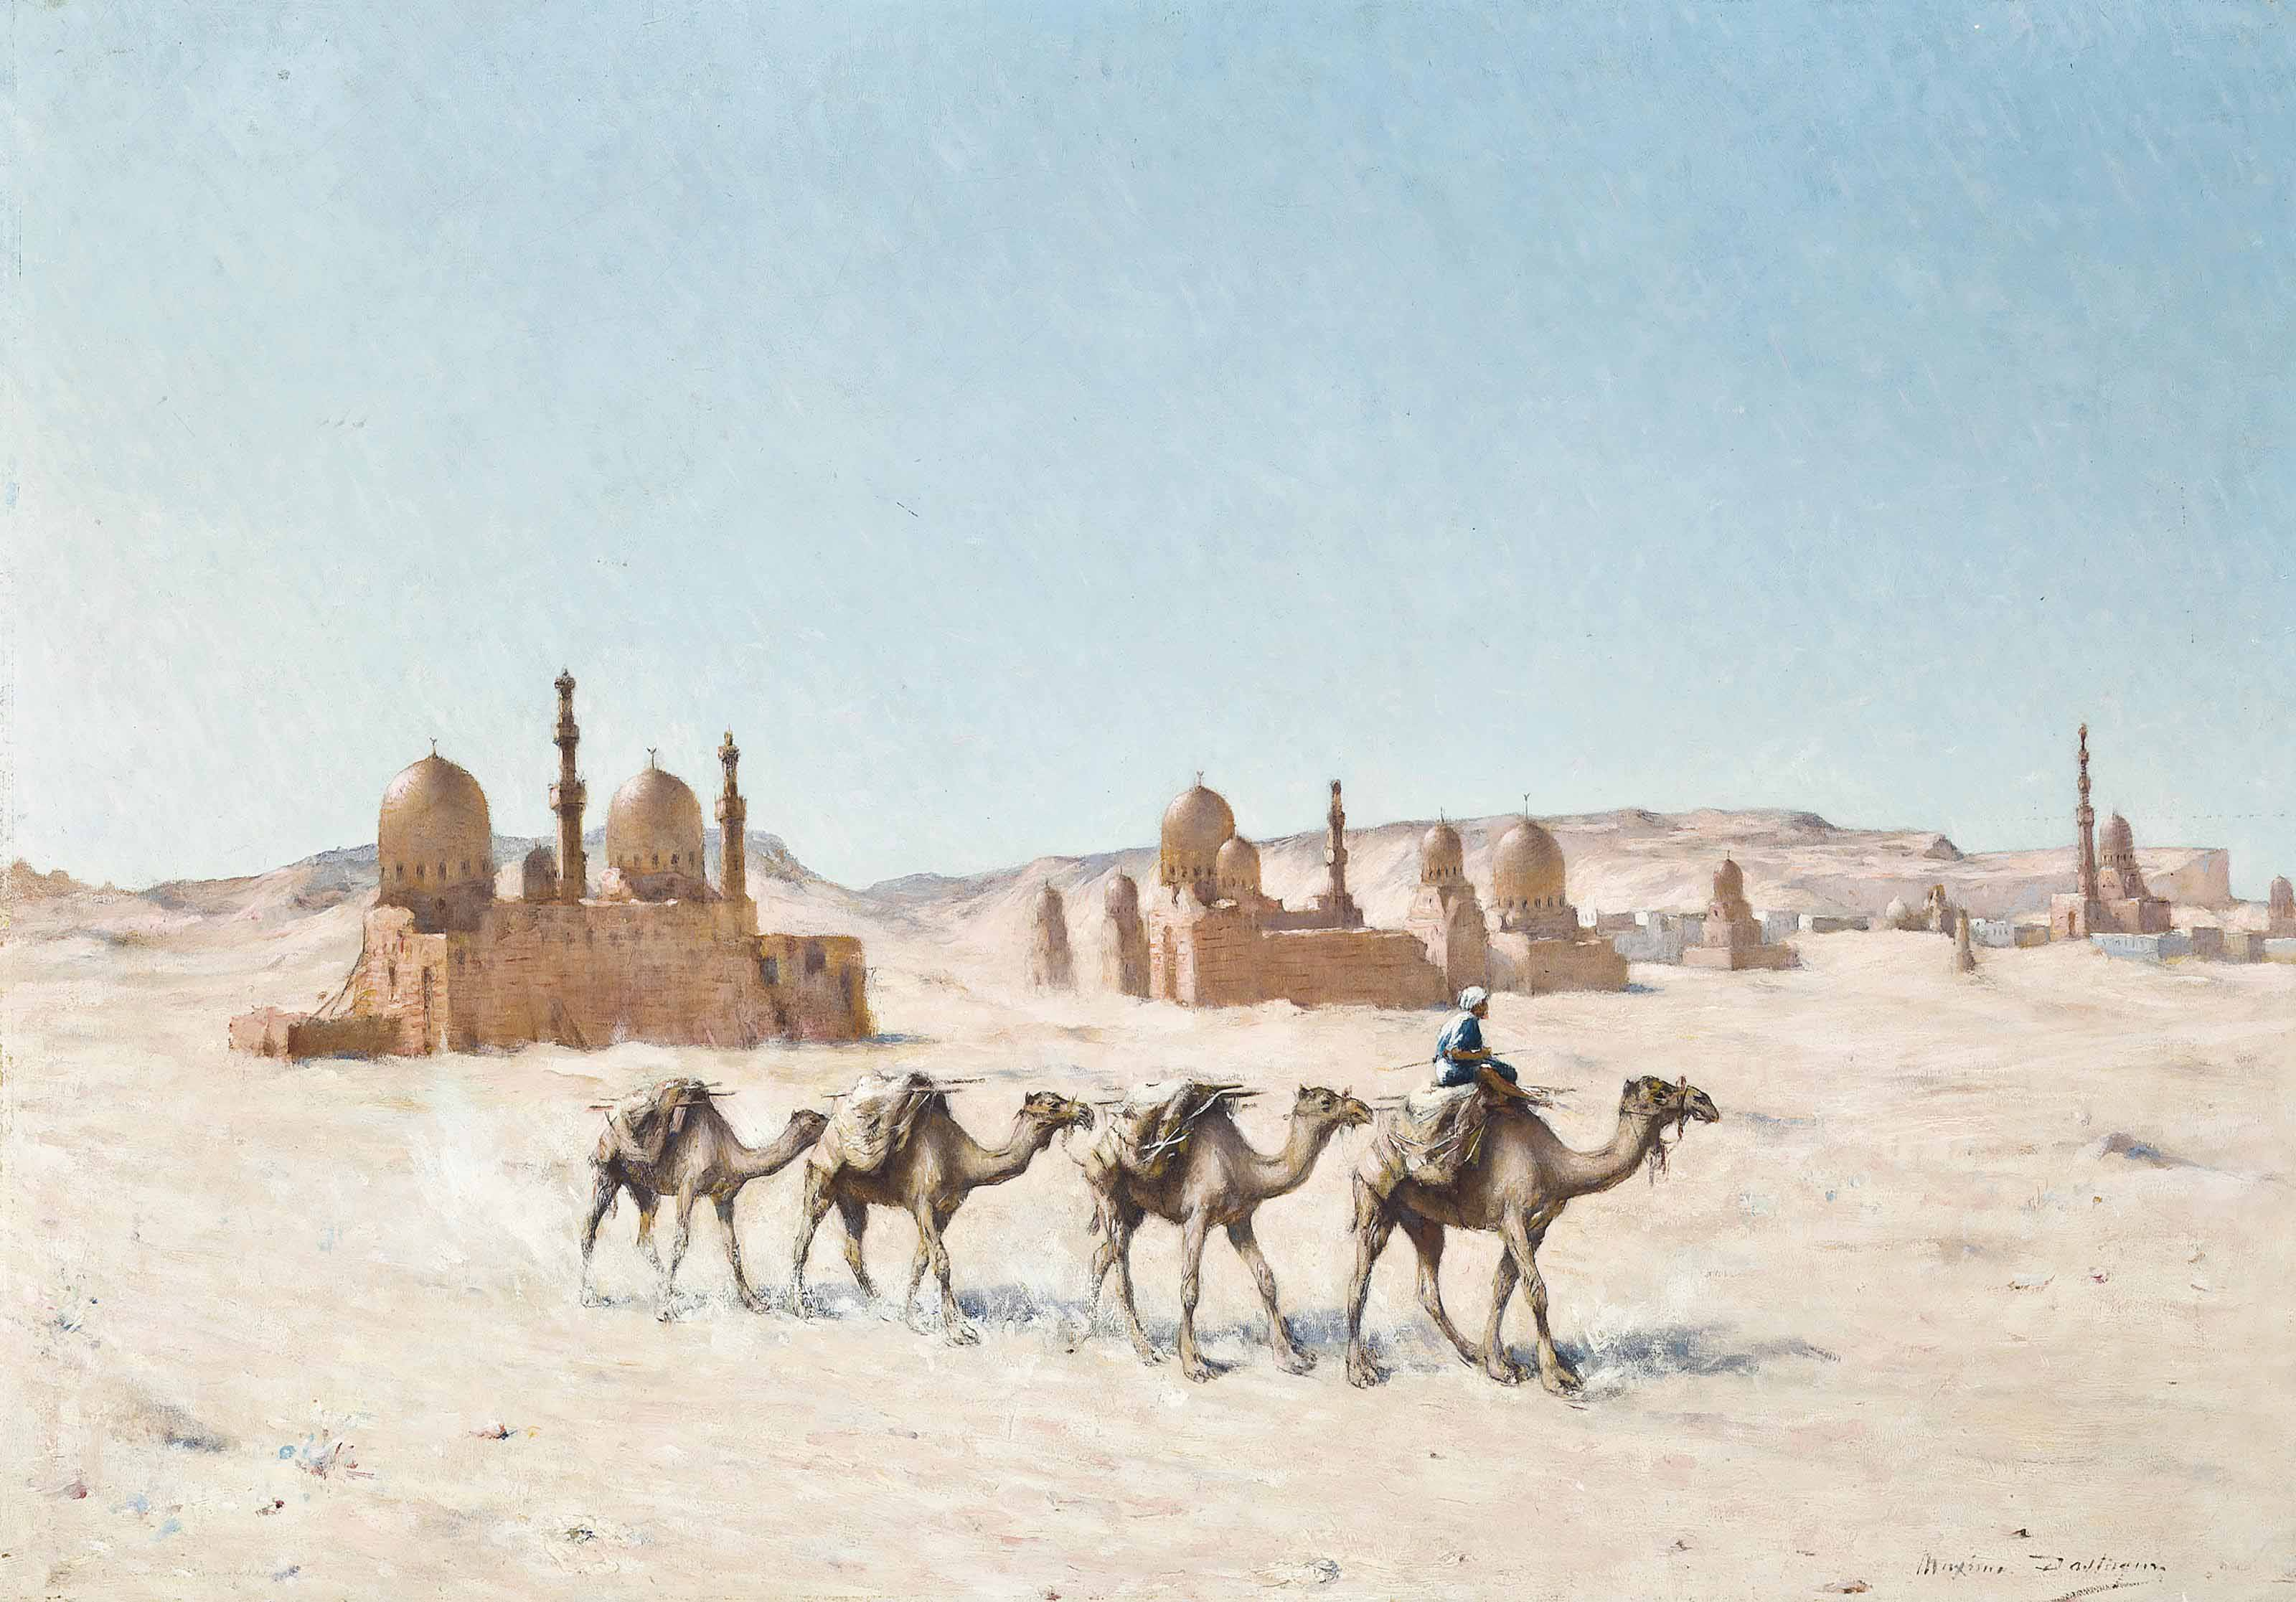 A camel train before a town in the desert